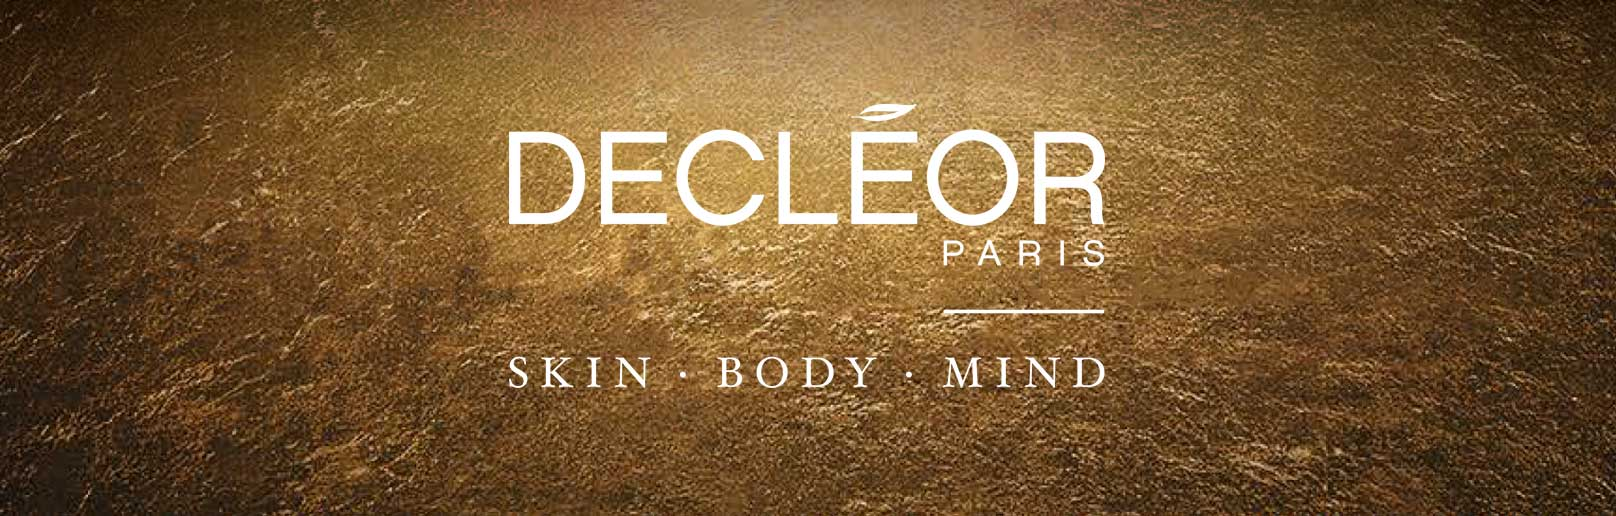 Decleor skin body and mind